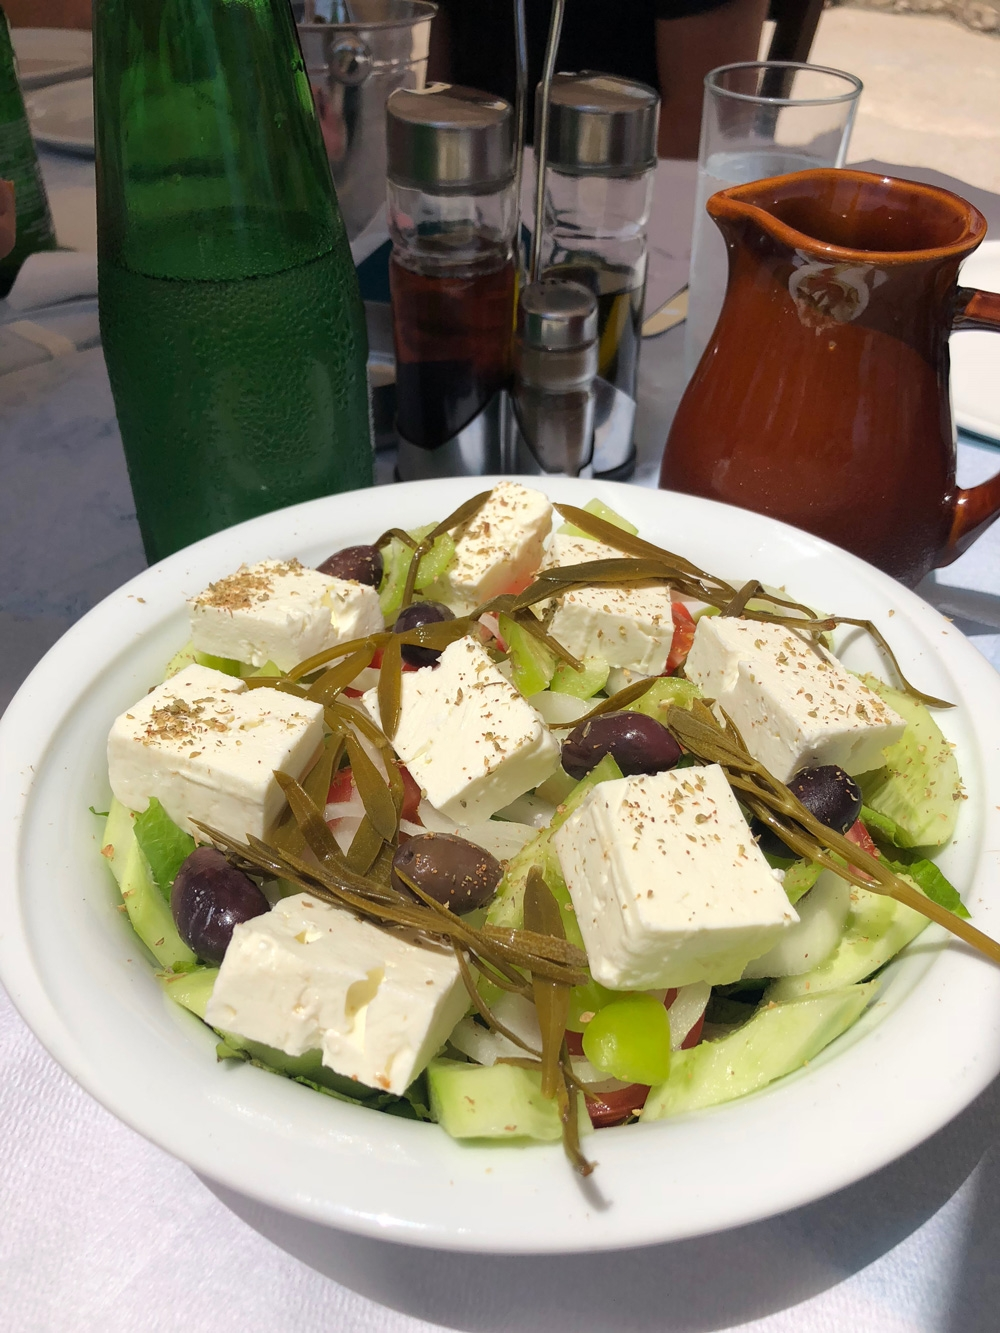 A plate of Greek salad consists of thick cut feta, cucumber, olives and other traditional ingredients